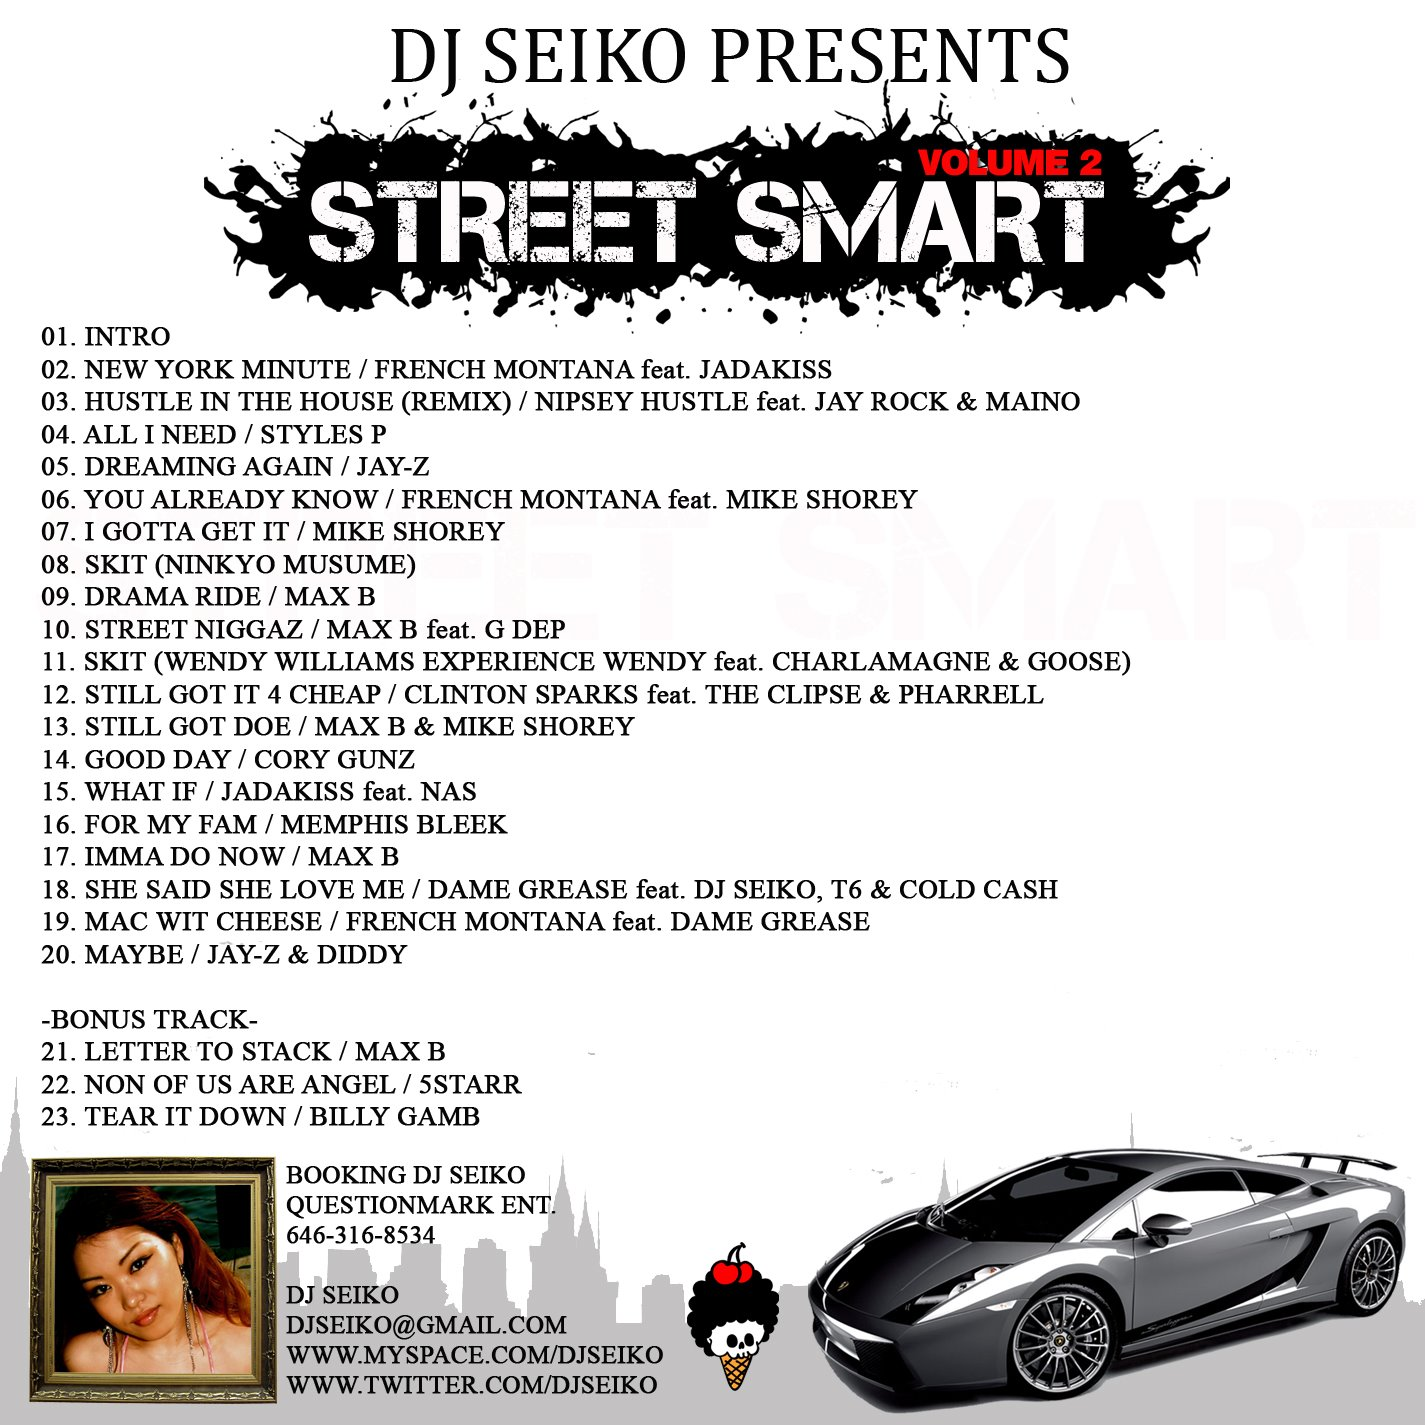 [djseiko+mixtape+backcover+copy2.jpg]